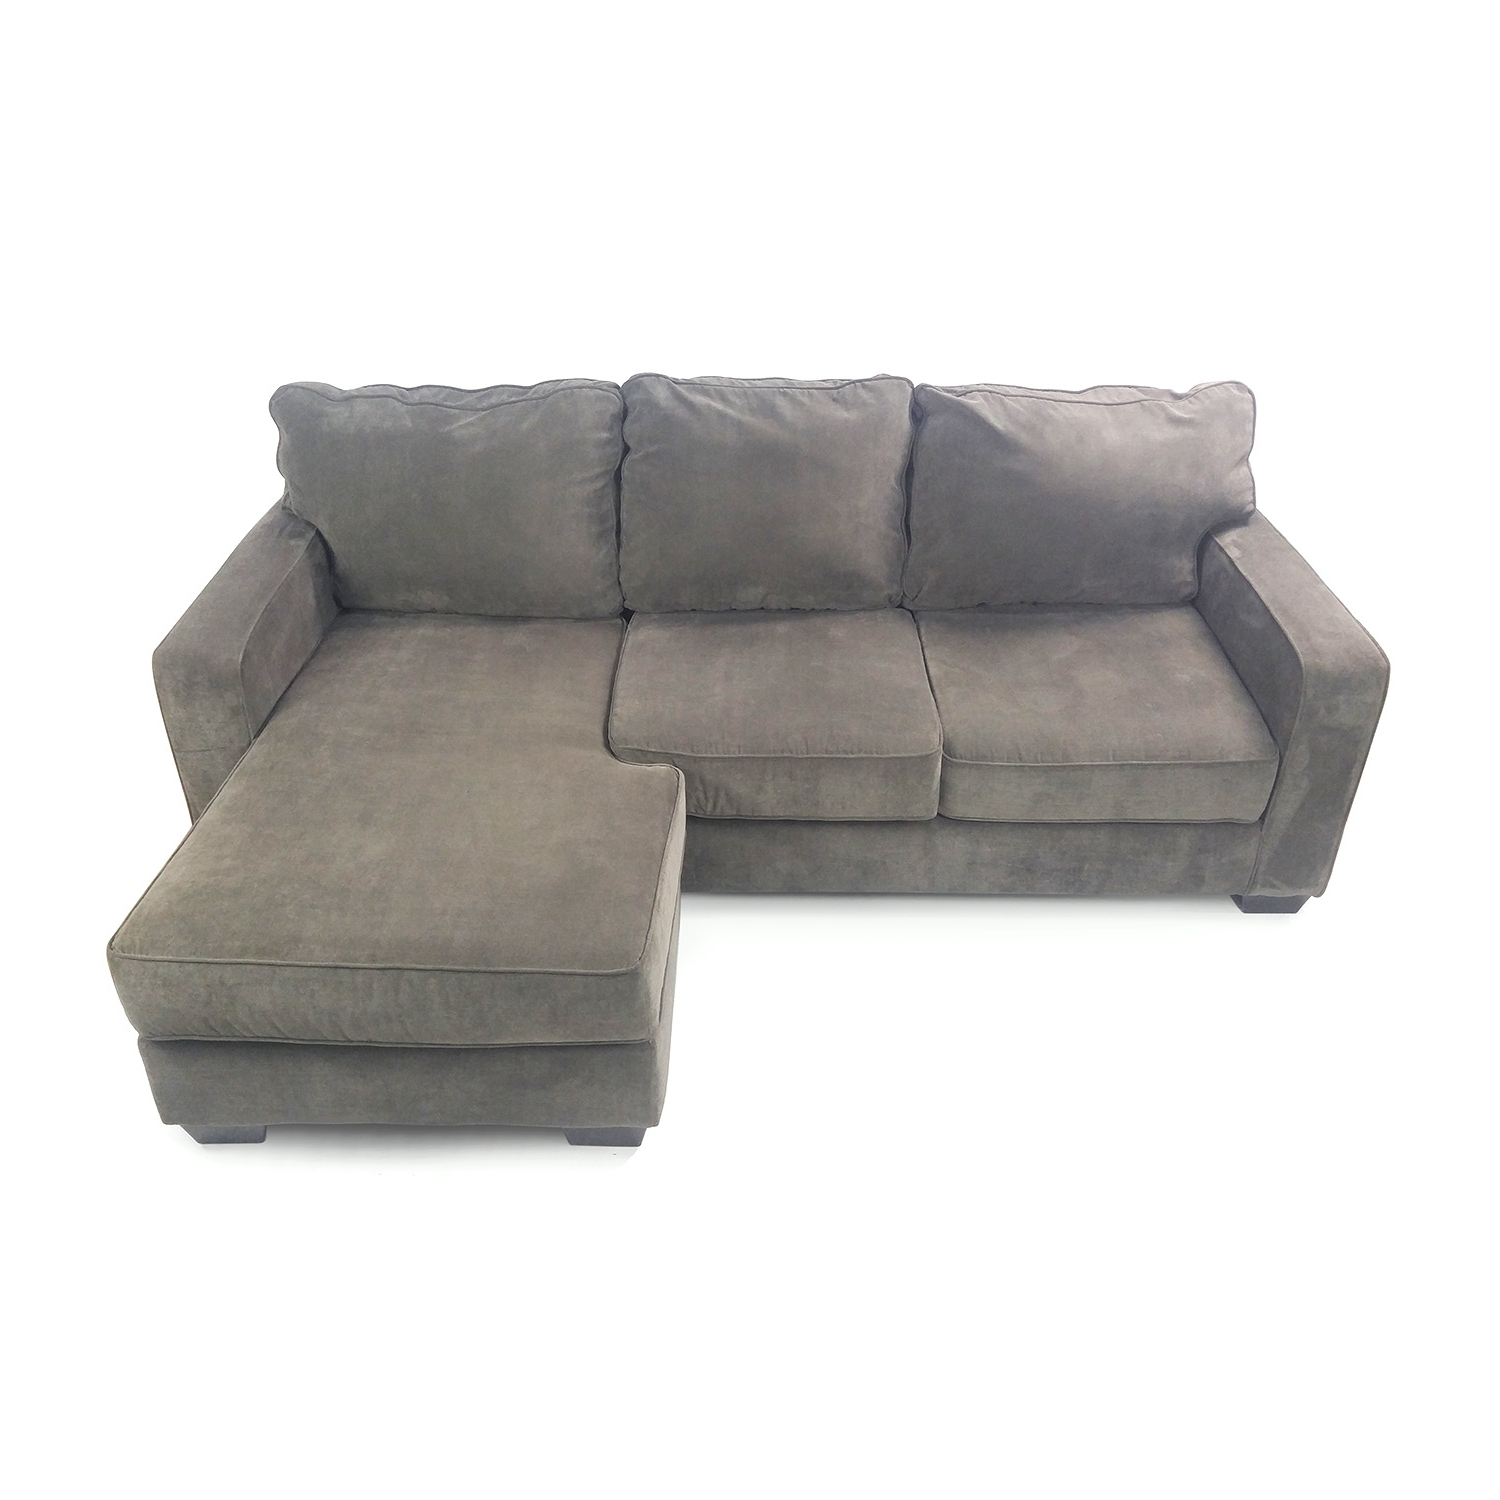 [%50% Off – Ashley Furniture Hodan Sofa Chaise / Sofas Regarding Fashionable Hodan Sofas With Chaise|Hodan Sofas With Chaise In Famous 50% Off – Ashley Furniture Hodan Sofa Chaise / Sofas|Widely Used Hodan Sofas With Chaise For 50% Off – Ashley Furniture Hodan Sofa Chaise / Sofas|Most Current 50% Off – Ashley Furniture Hodan Sofa Chaise / Sofas Pertaining To Hodan Sofas With Chaise%] (View 1 of 15)